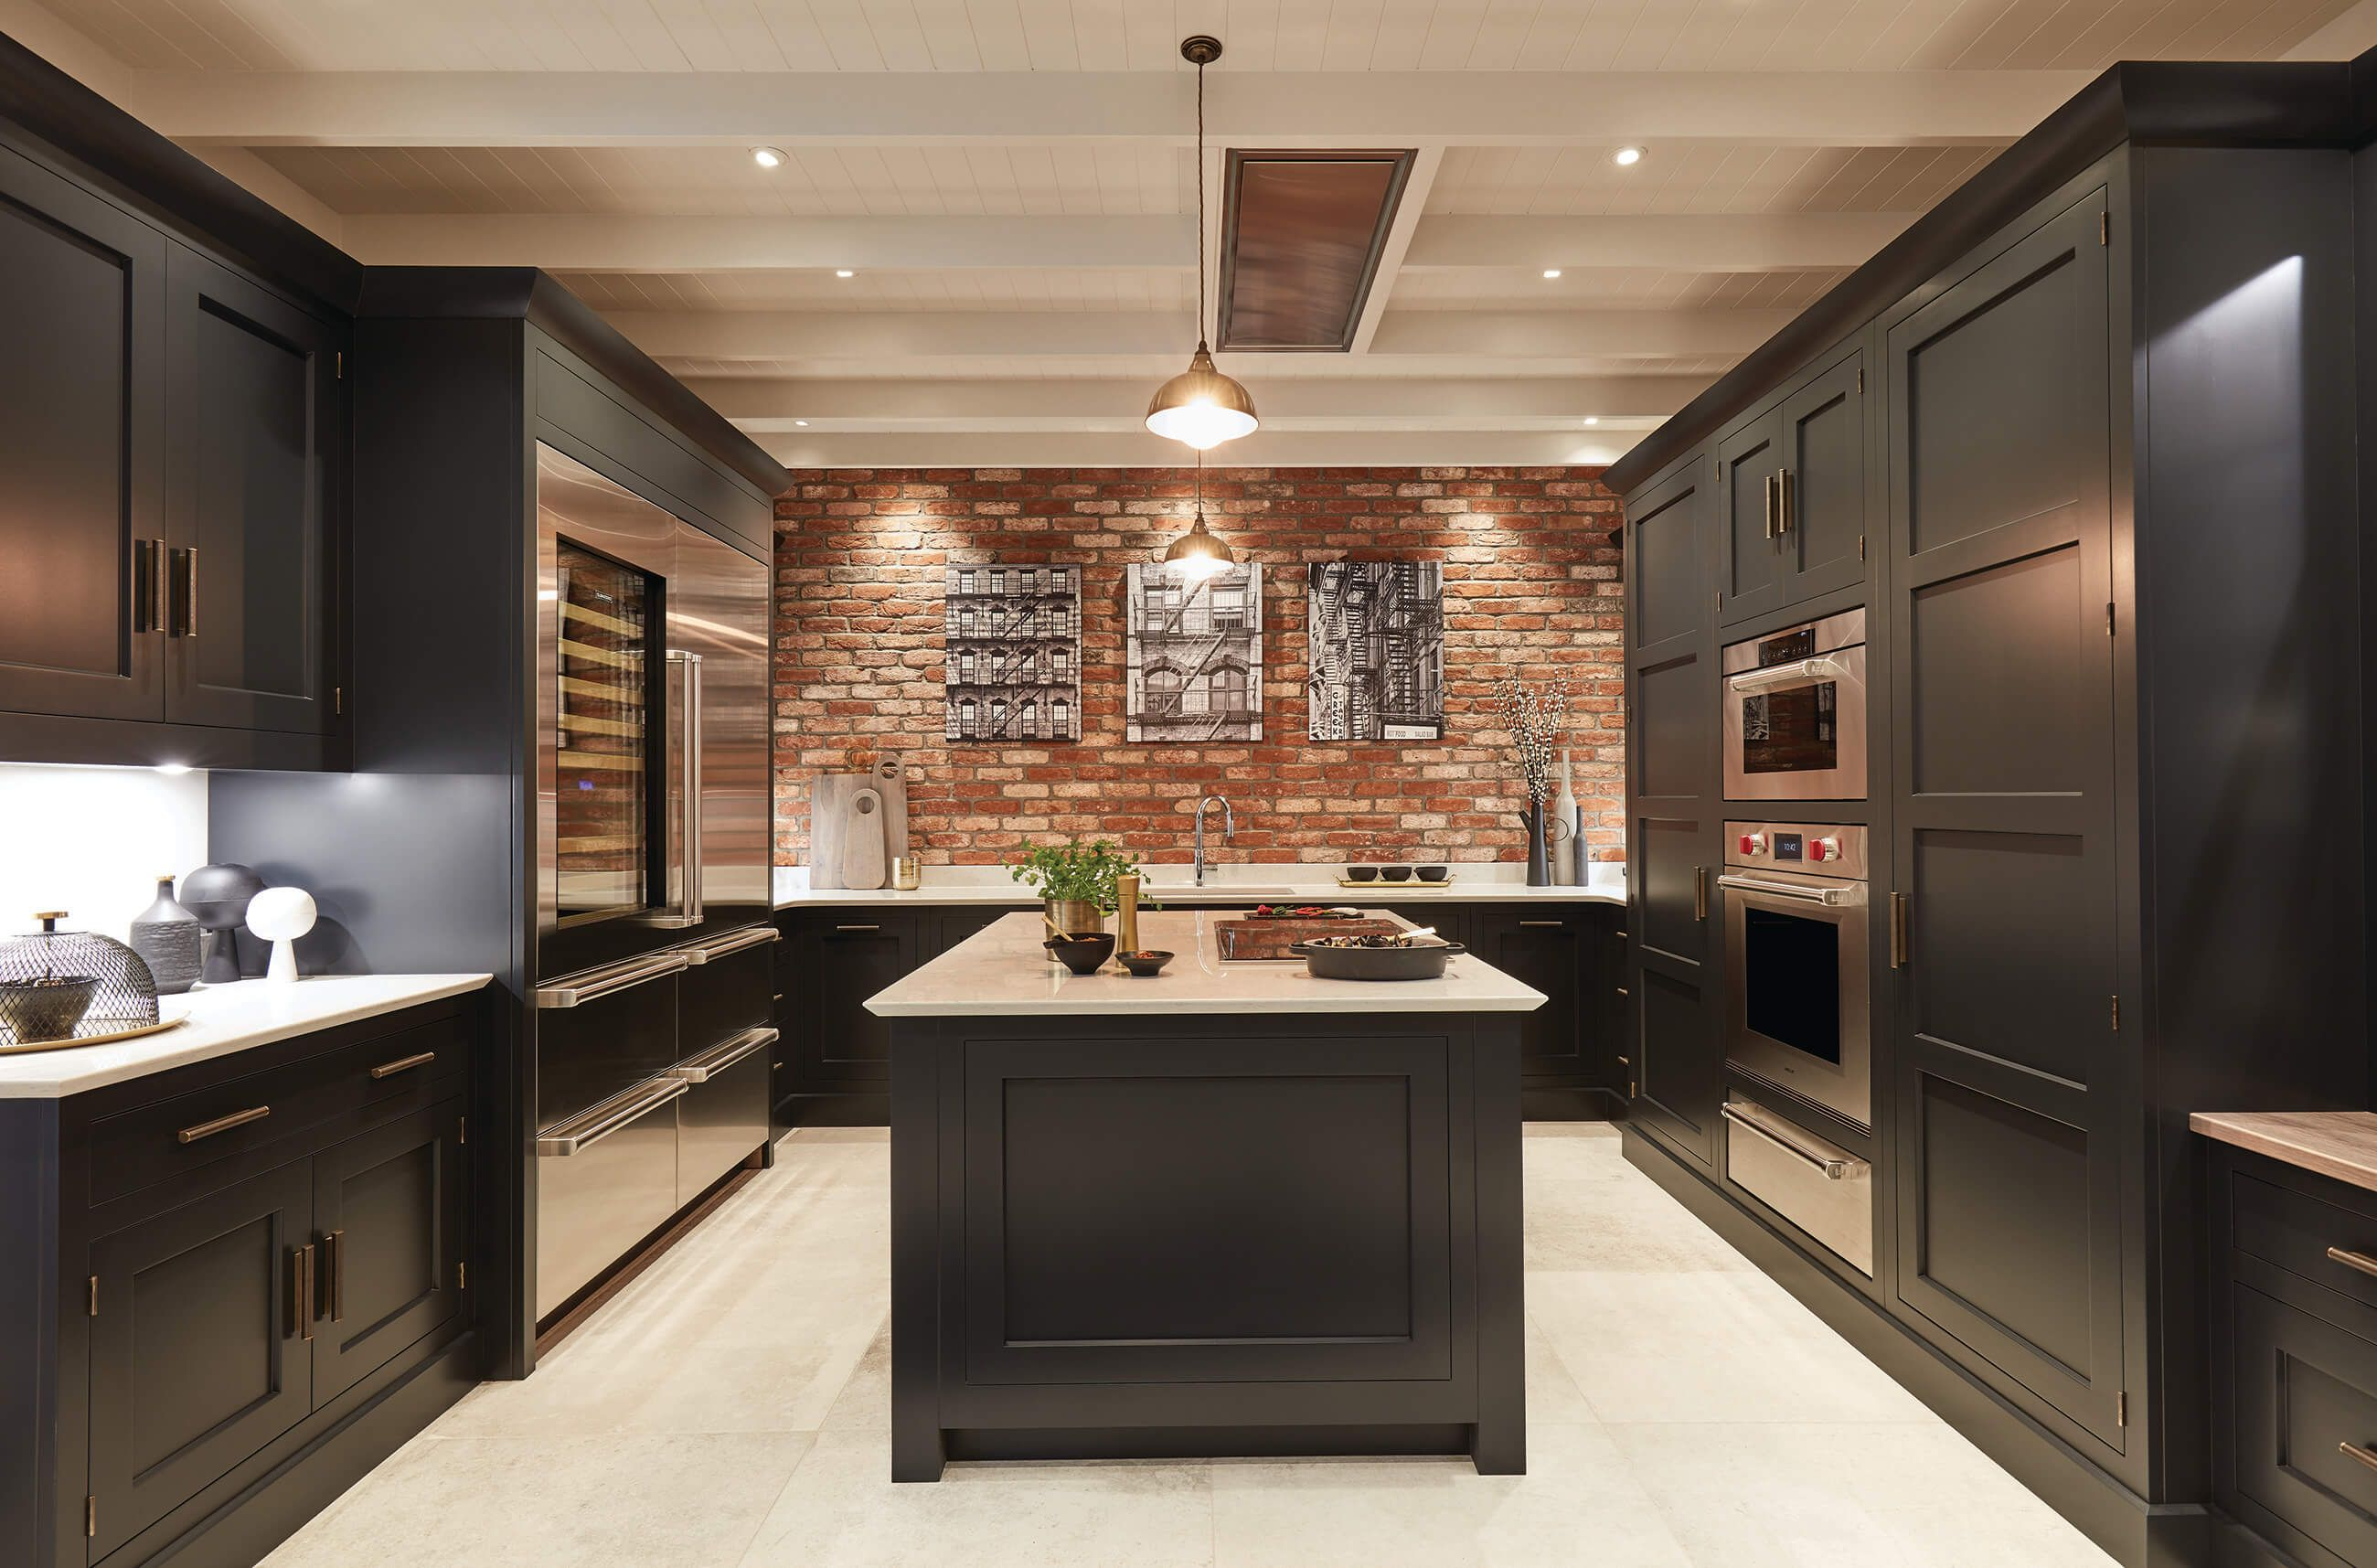 Exposed Brick Kitchen Rustic kitchen design, Exposed